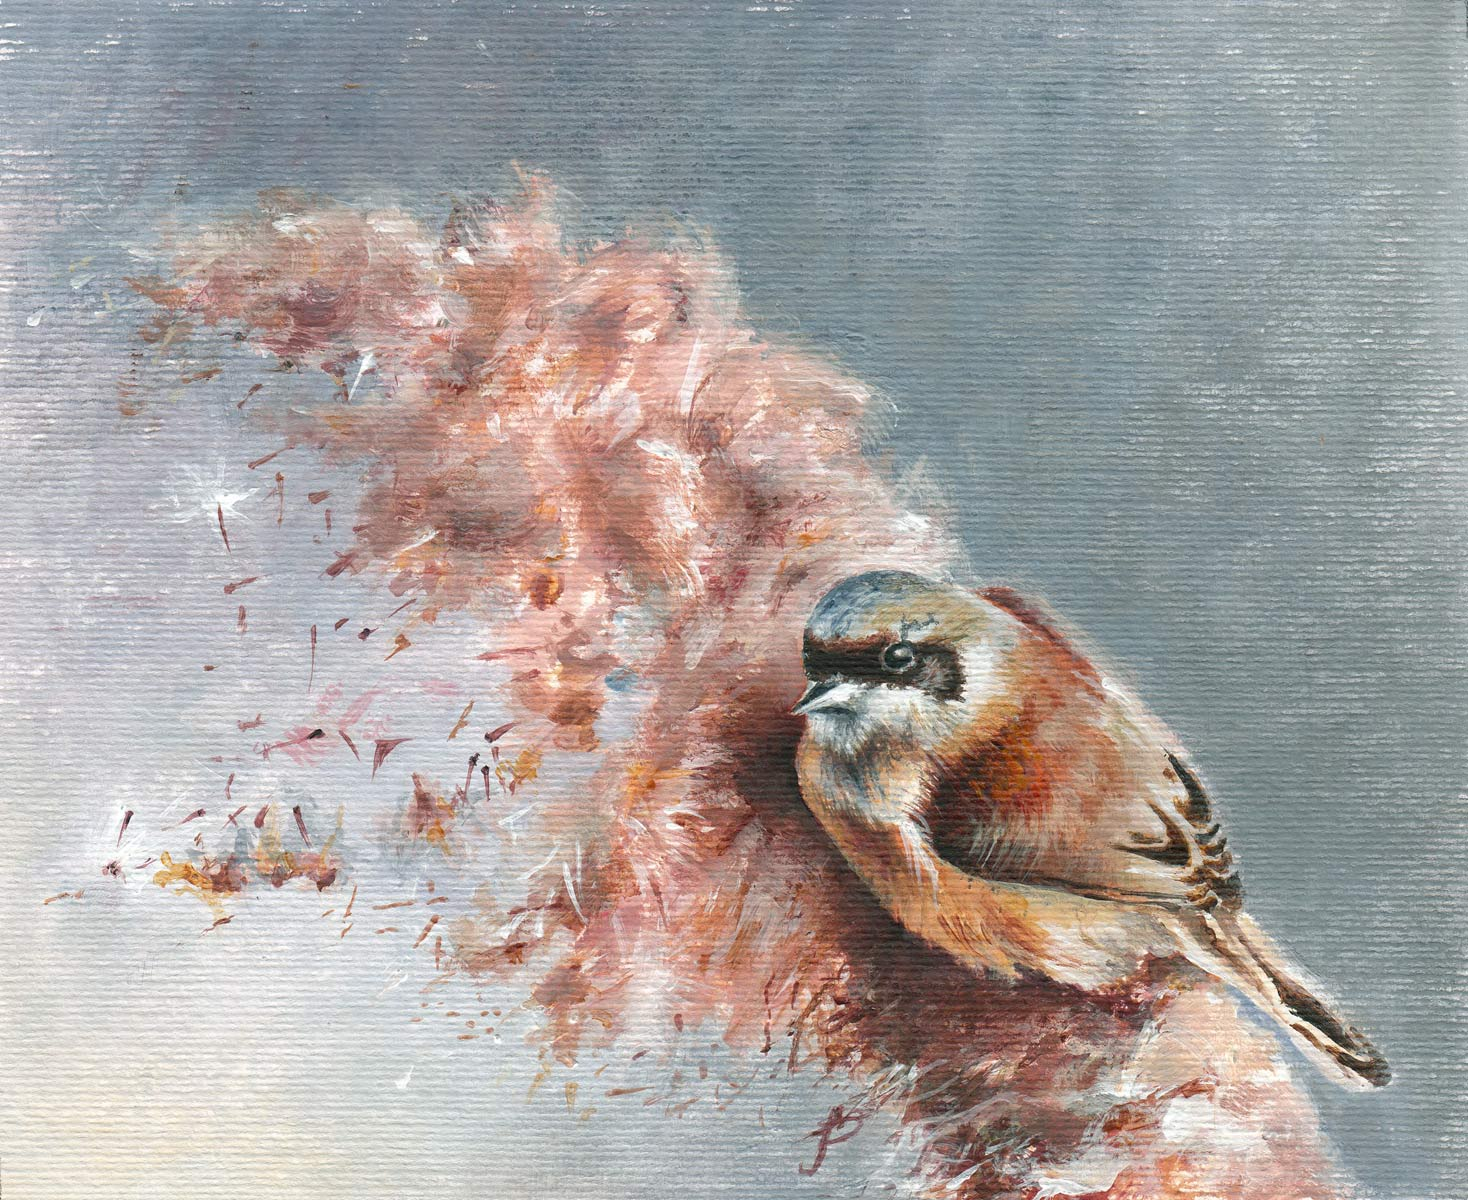 Penduline Tit on Bullrush bird art by bird artist Janie Penny